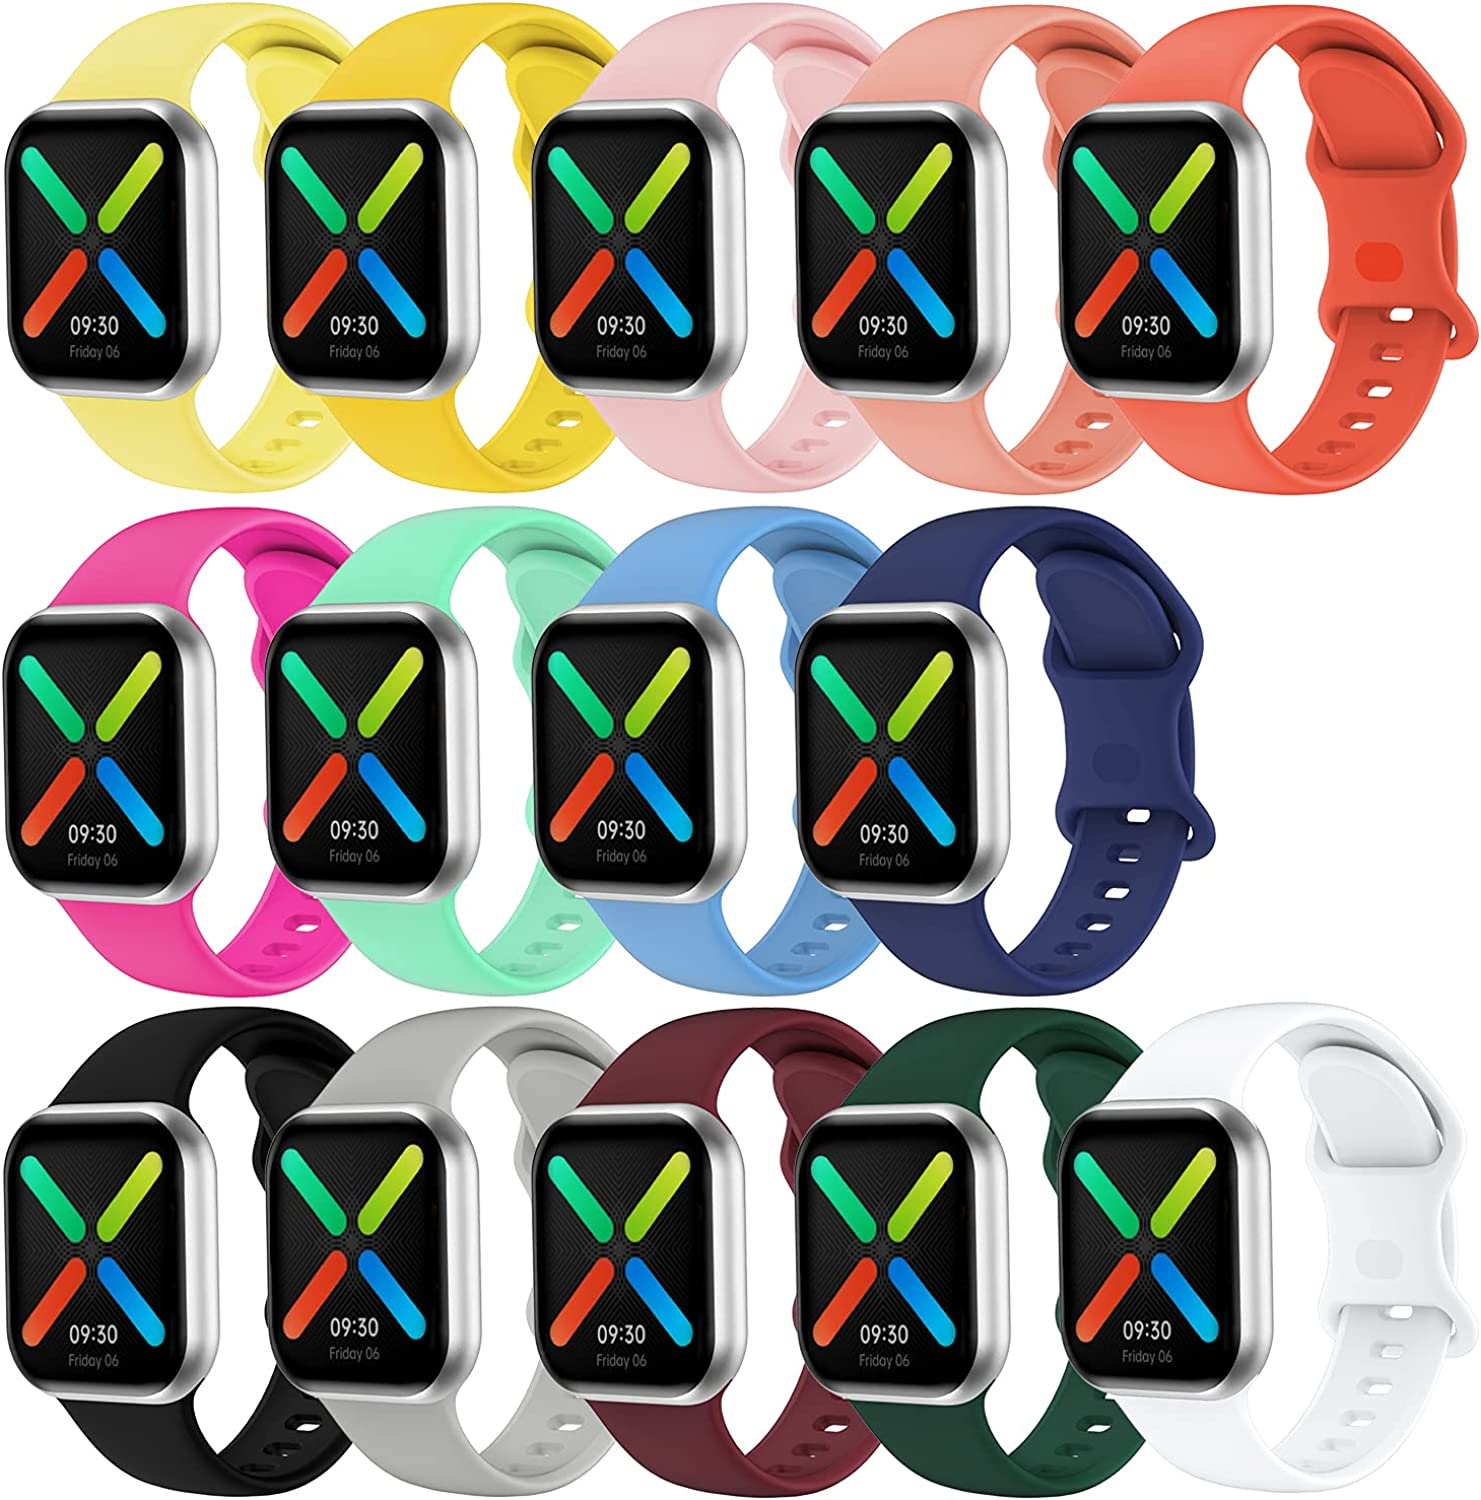 Watch Band Compatible for Apple Watch Band 38mm 40mm 42mm 44mm,SWHAS Soft Silicone Replacement Band Sport Wrist Strap for iWatch Series 6/5/4/3/2/1/SE